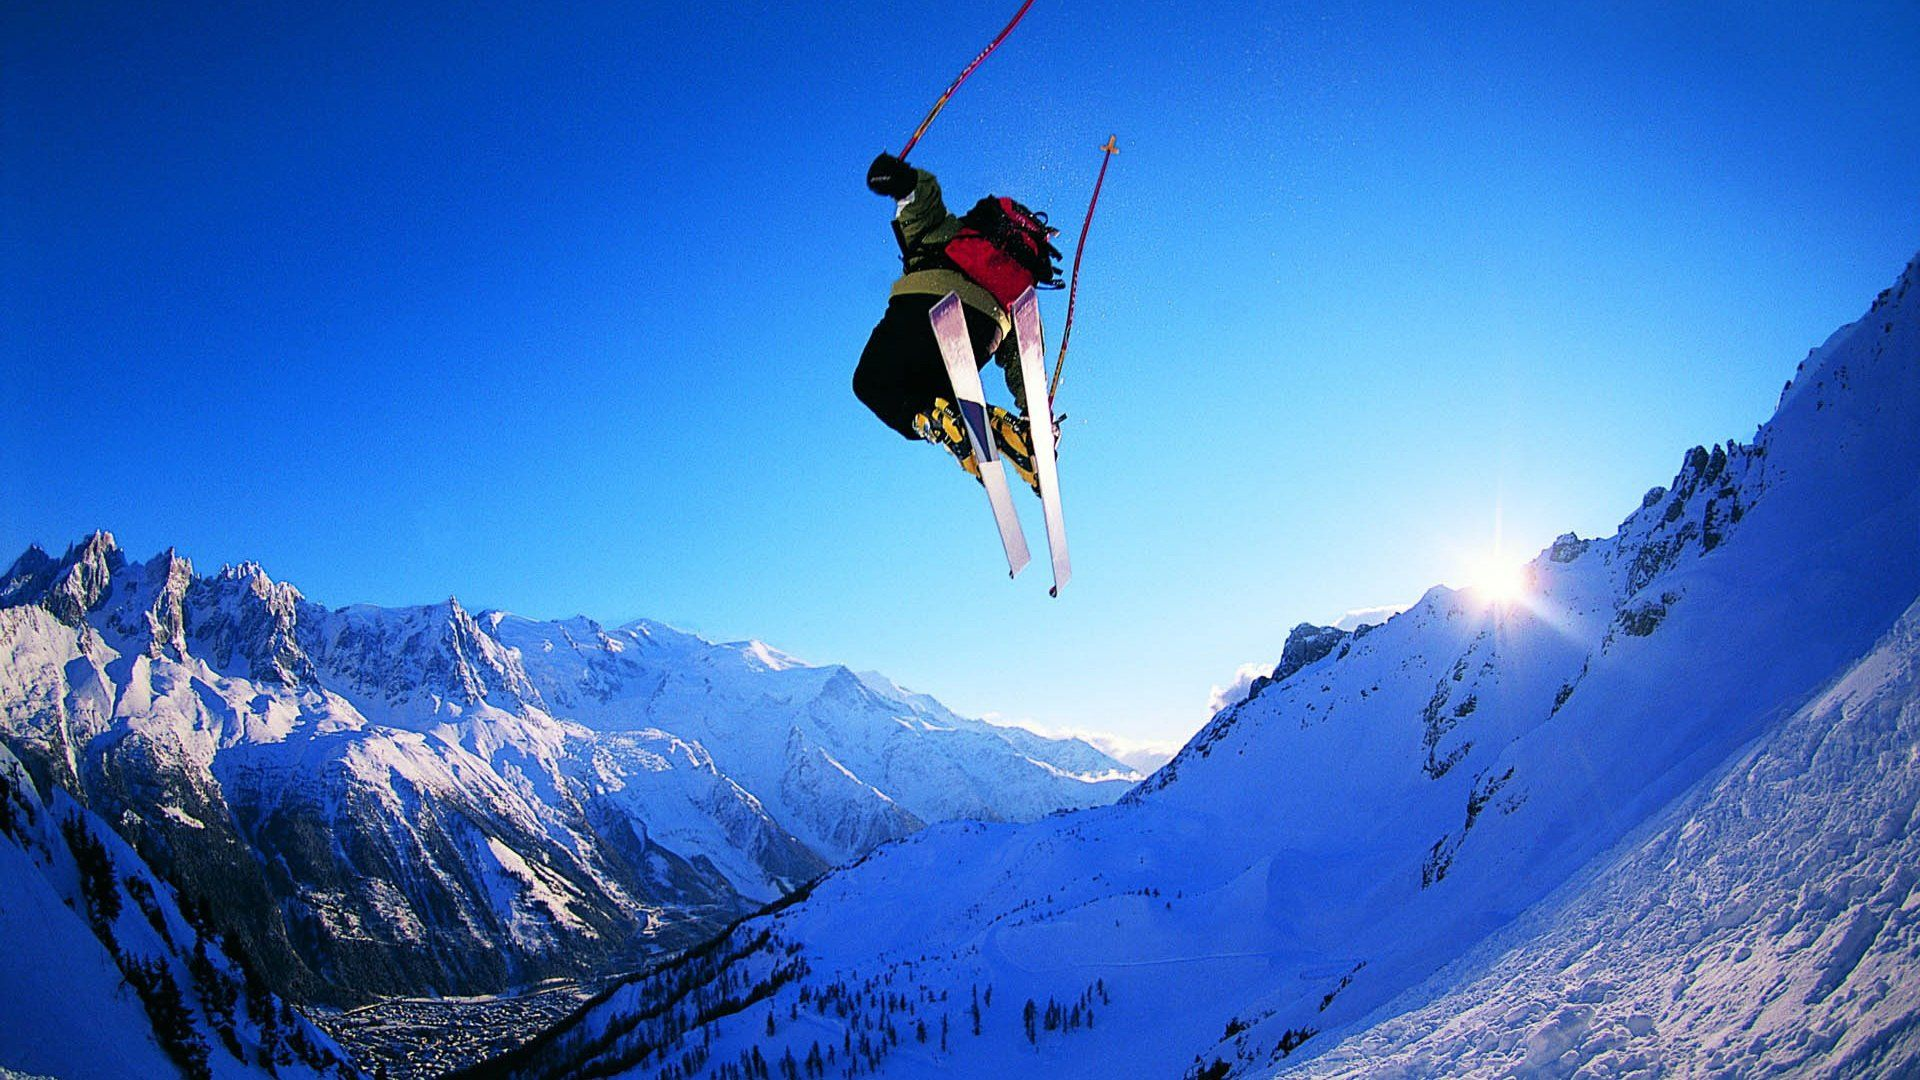 Ski Snowboard Wallpapers K Hd Desktop Backgrounds Phone